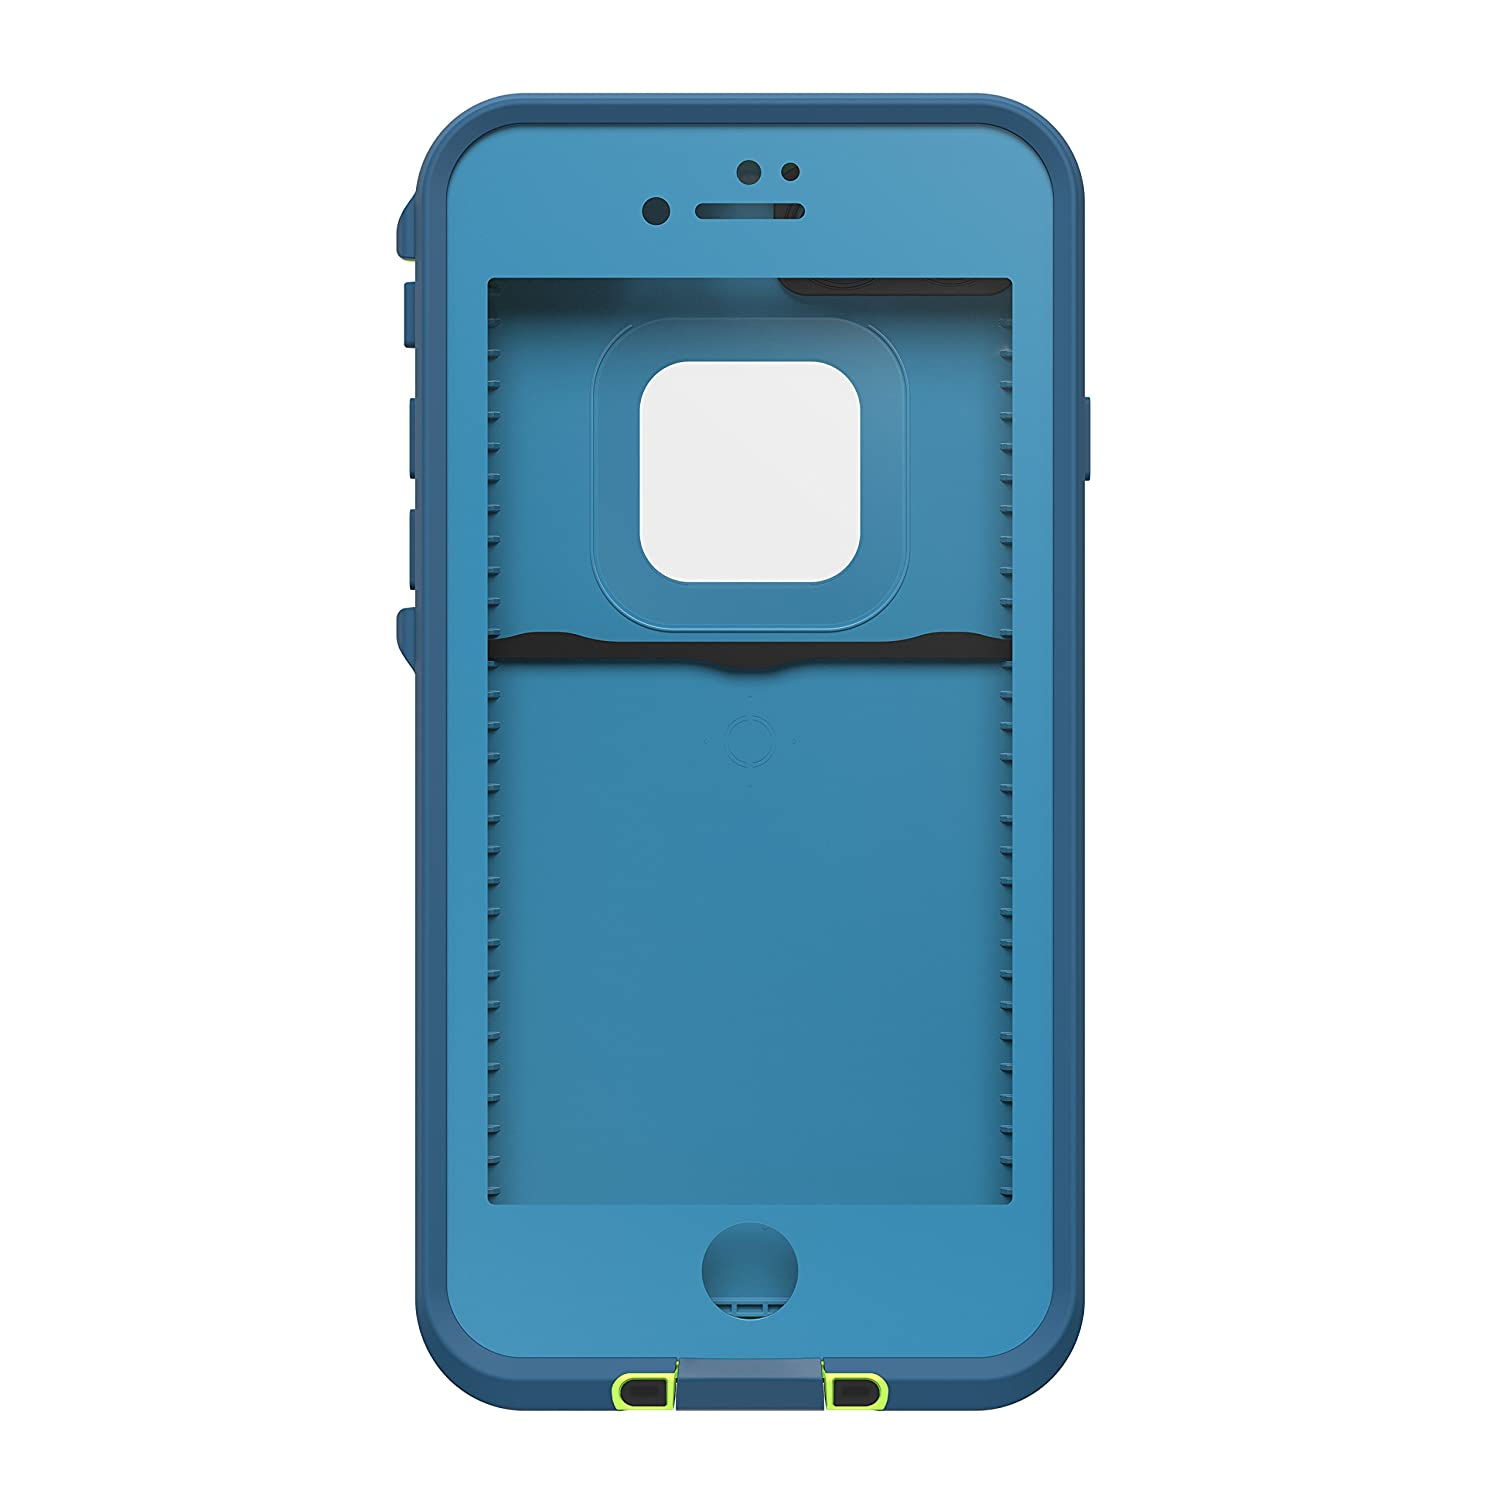 LifeProof FR/Ä/' Series Waterproof Case for iPhone 7 ONLY Retail Packaging - not Plus Twilight + Gear Pro Belt Clip